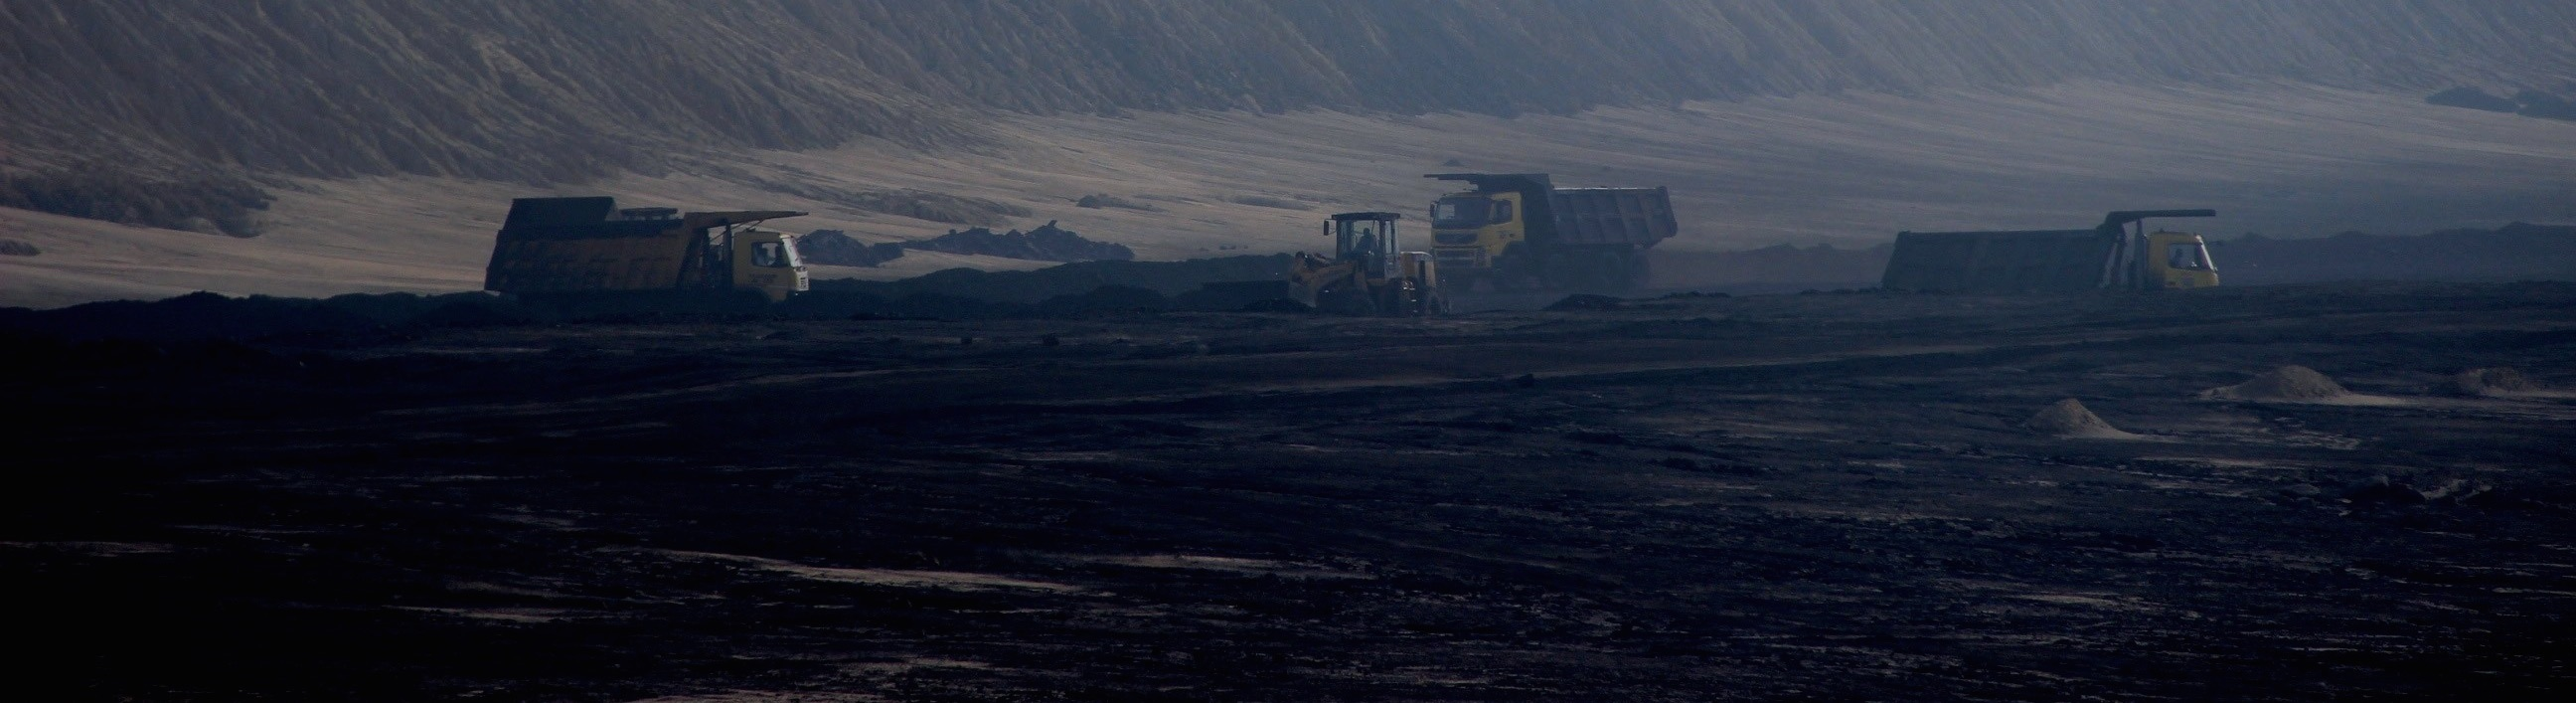 Burying the Law to Make Way for a Coal Mine